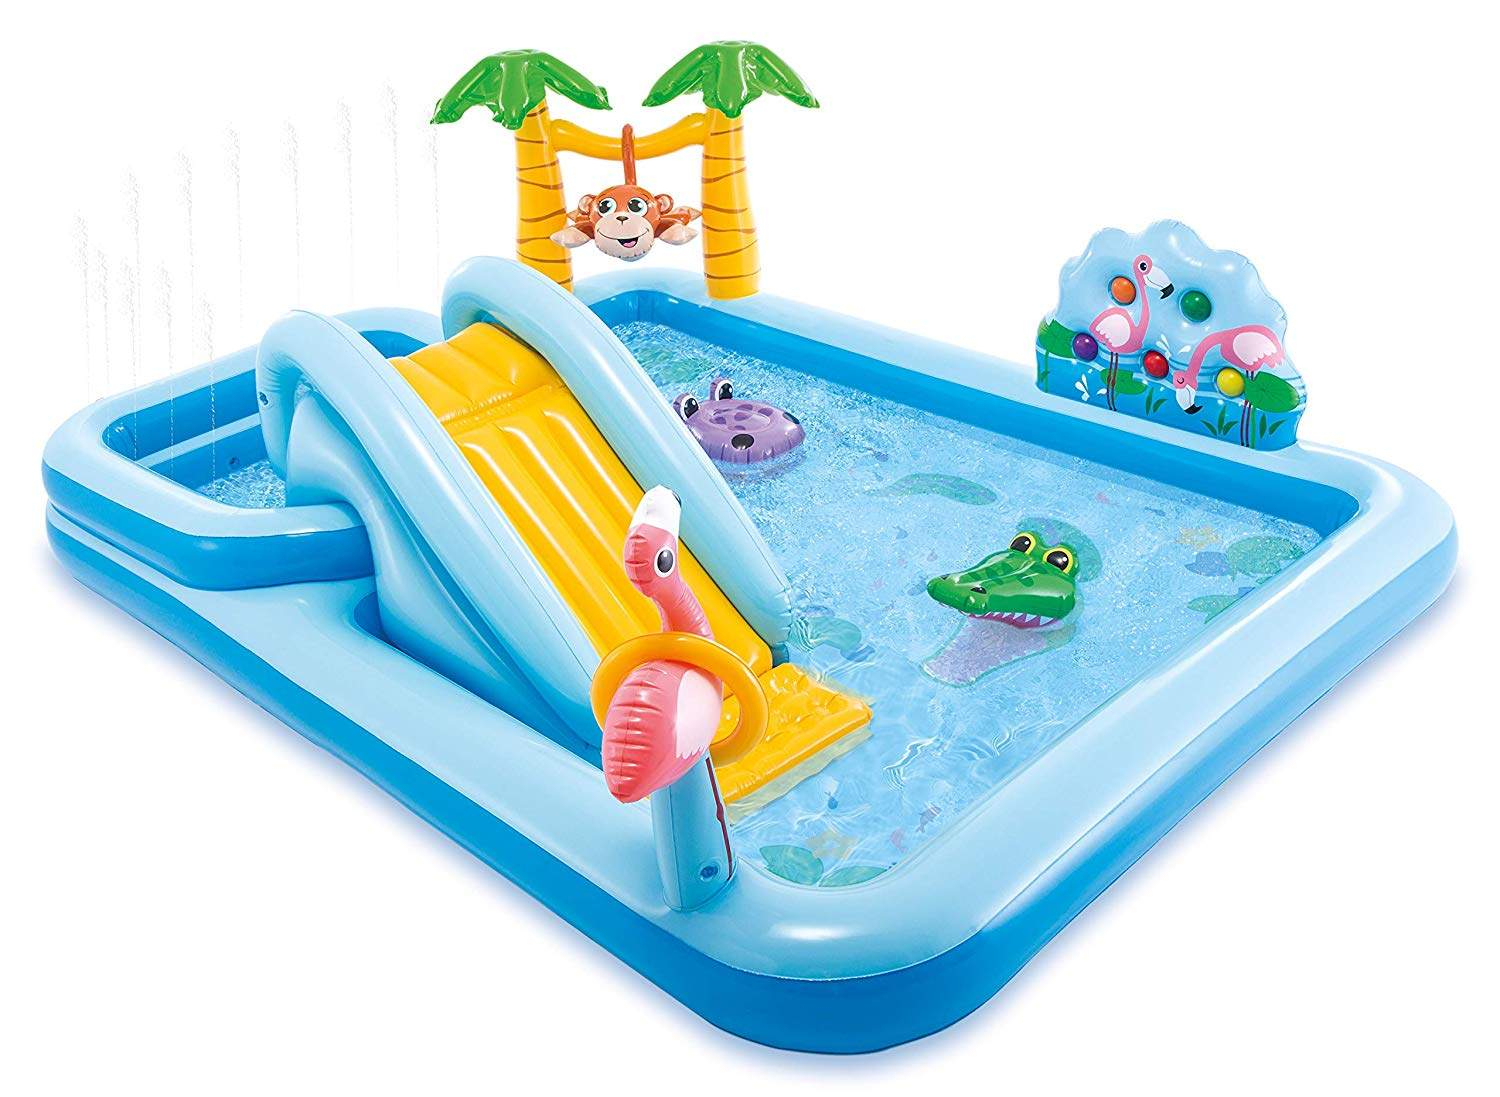 Piscine Pour Enfants Intex 57161 Jungle Adventure Play Center pour Piscine Intex Enfant